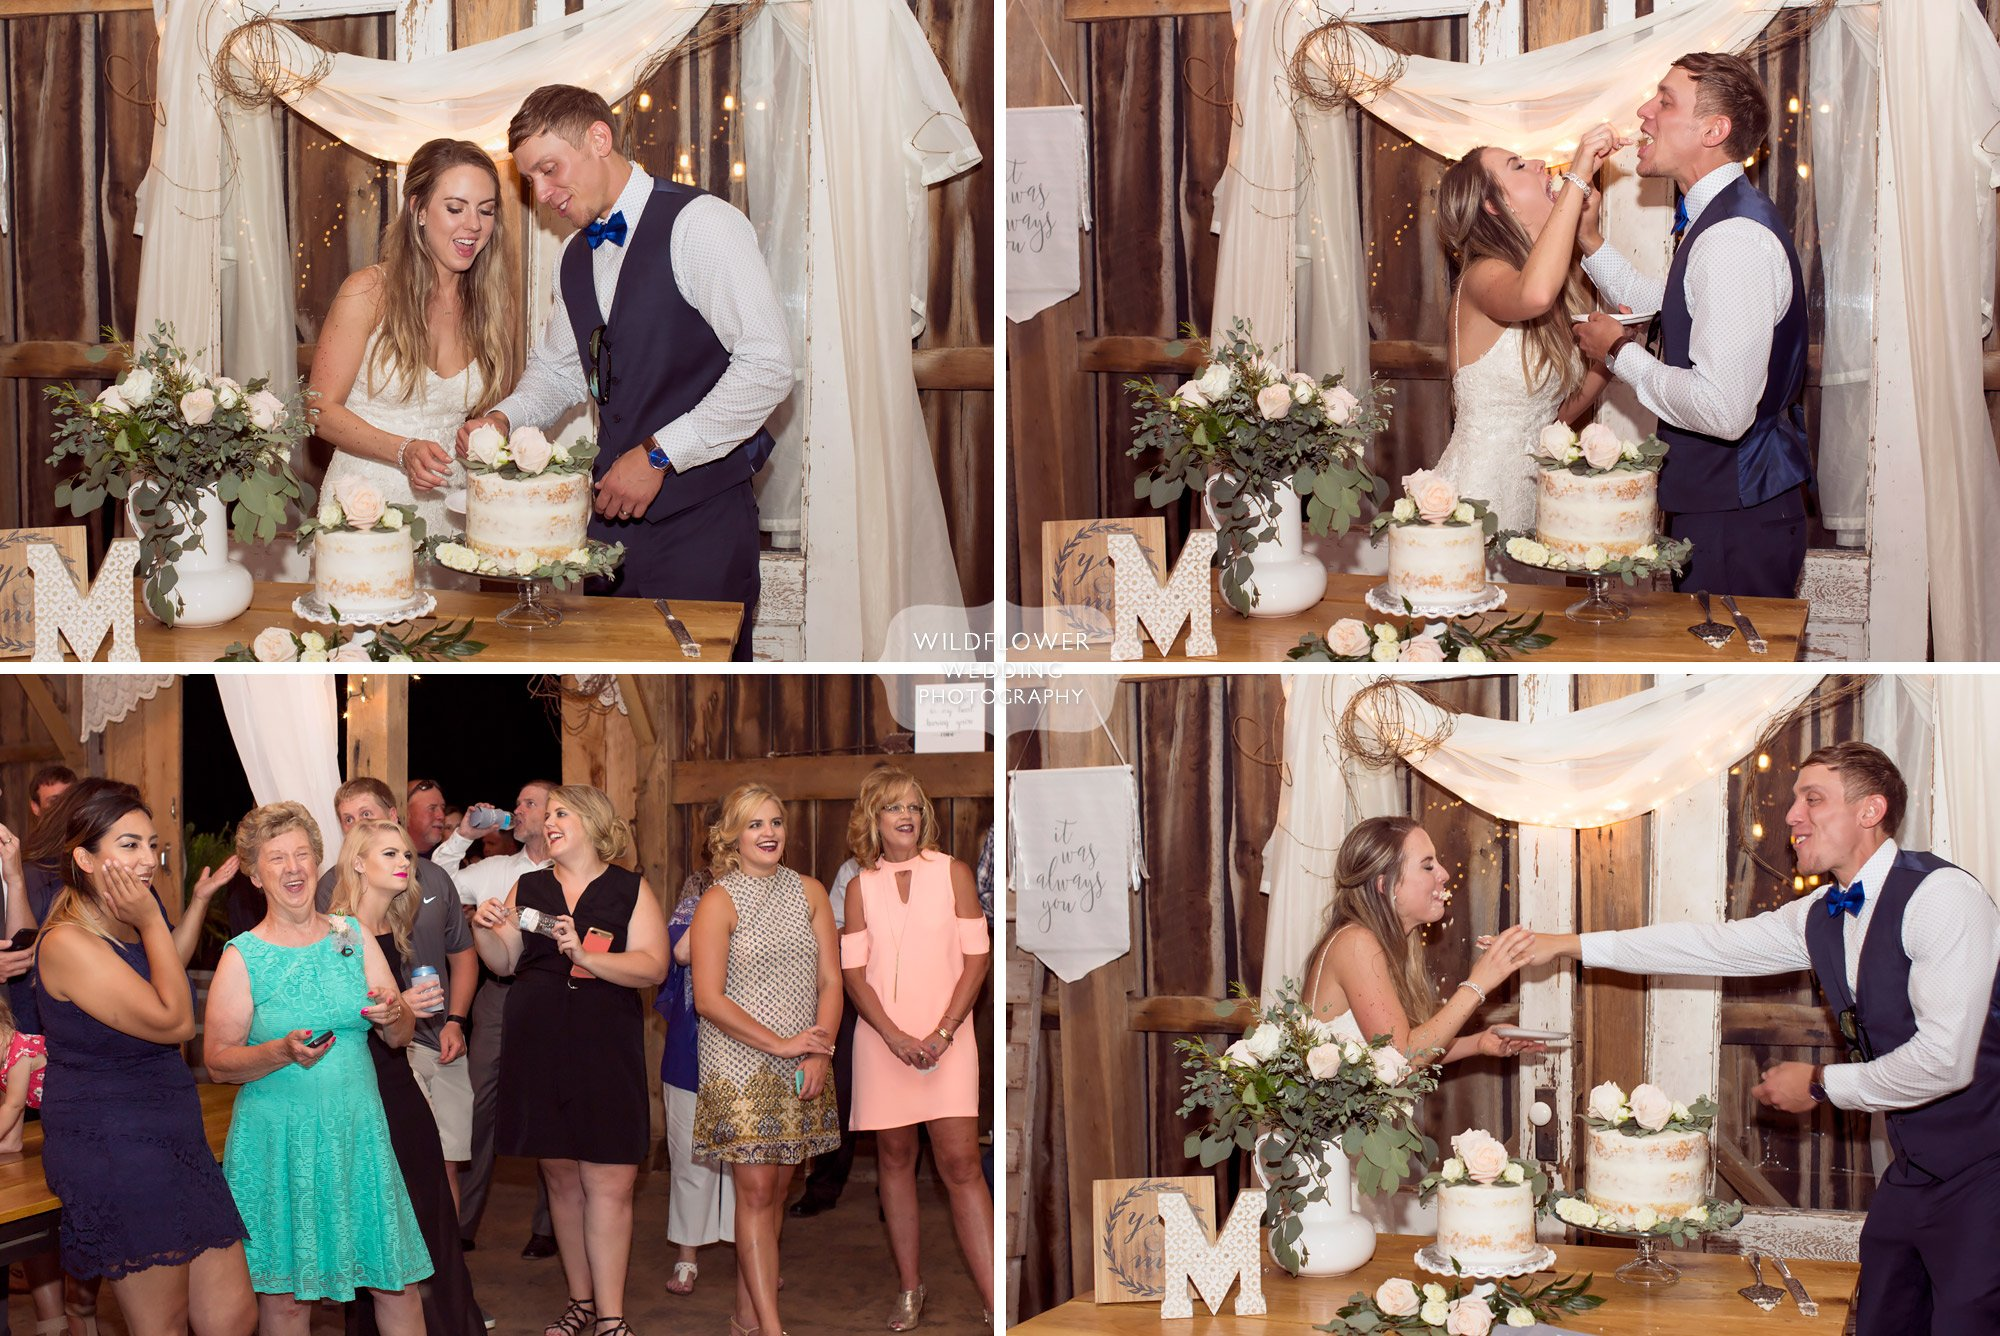 Great photos of the bride and groom cake smash at the barn at Kempker's in southern MO.